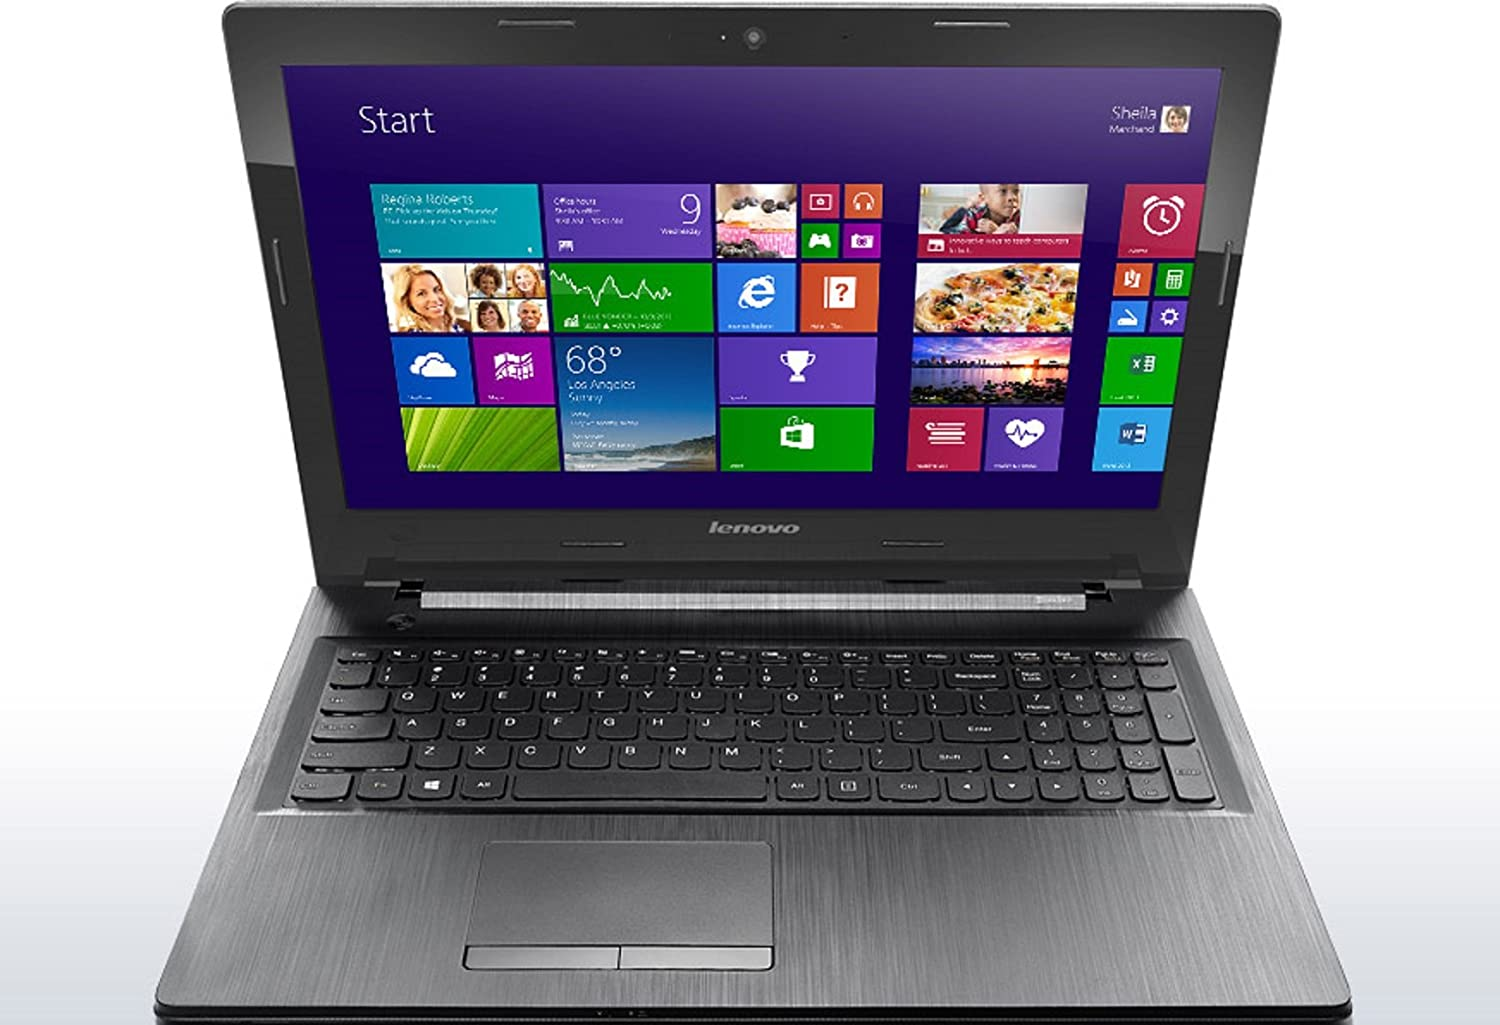 Amazon.com: Lenovo G50-80 80E501U3US 16-Inch LED Notebook ...